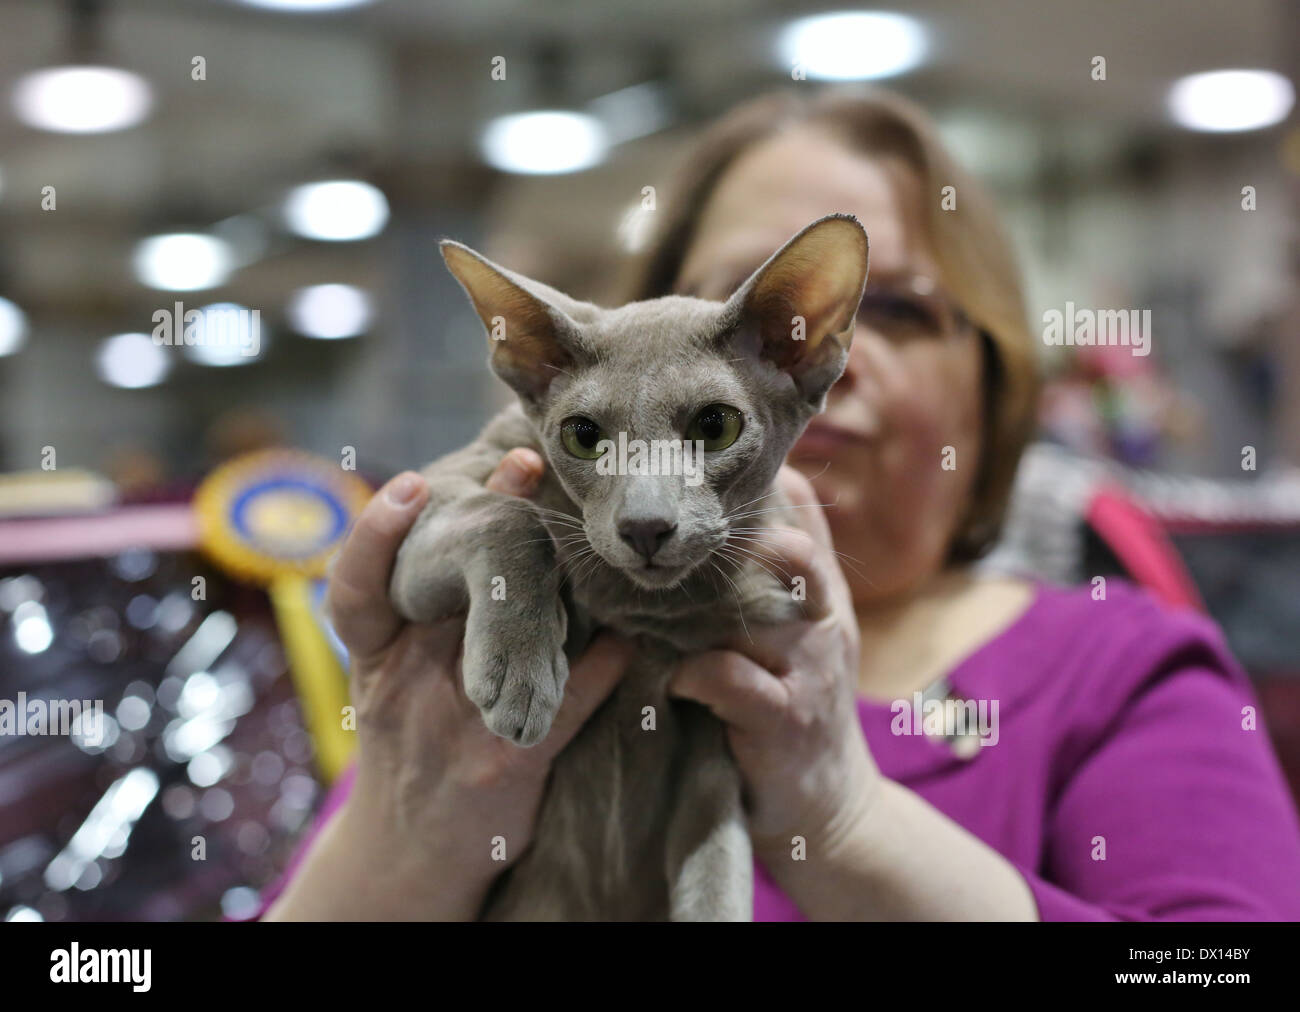 A woman holding a cat with large ears at a cat show. - Stock Image